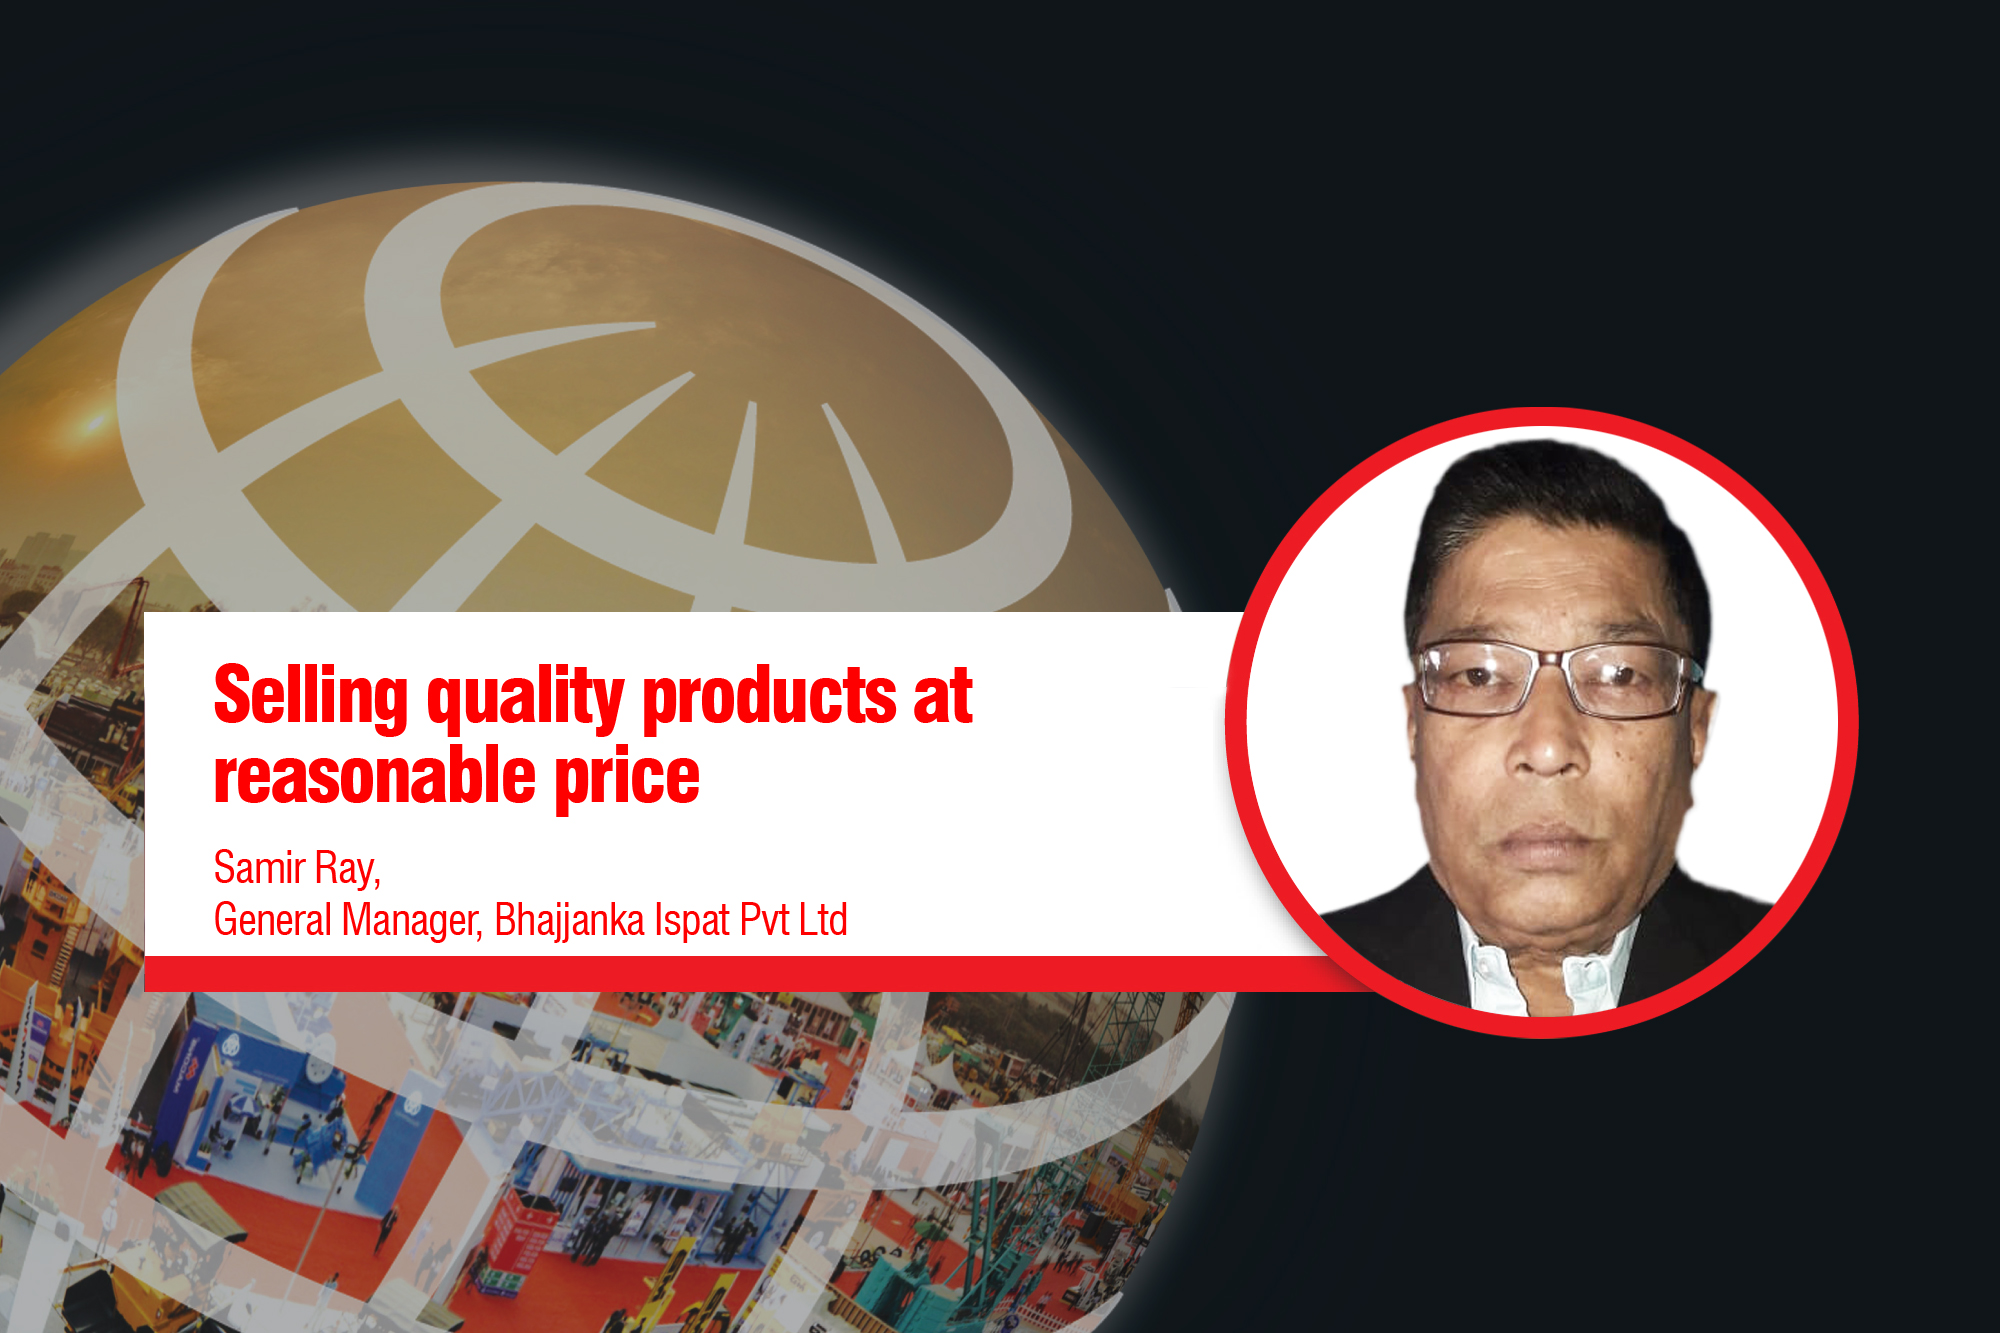 Selling quality products at reasonable price